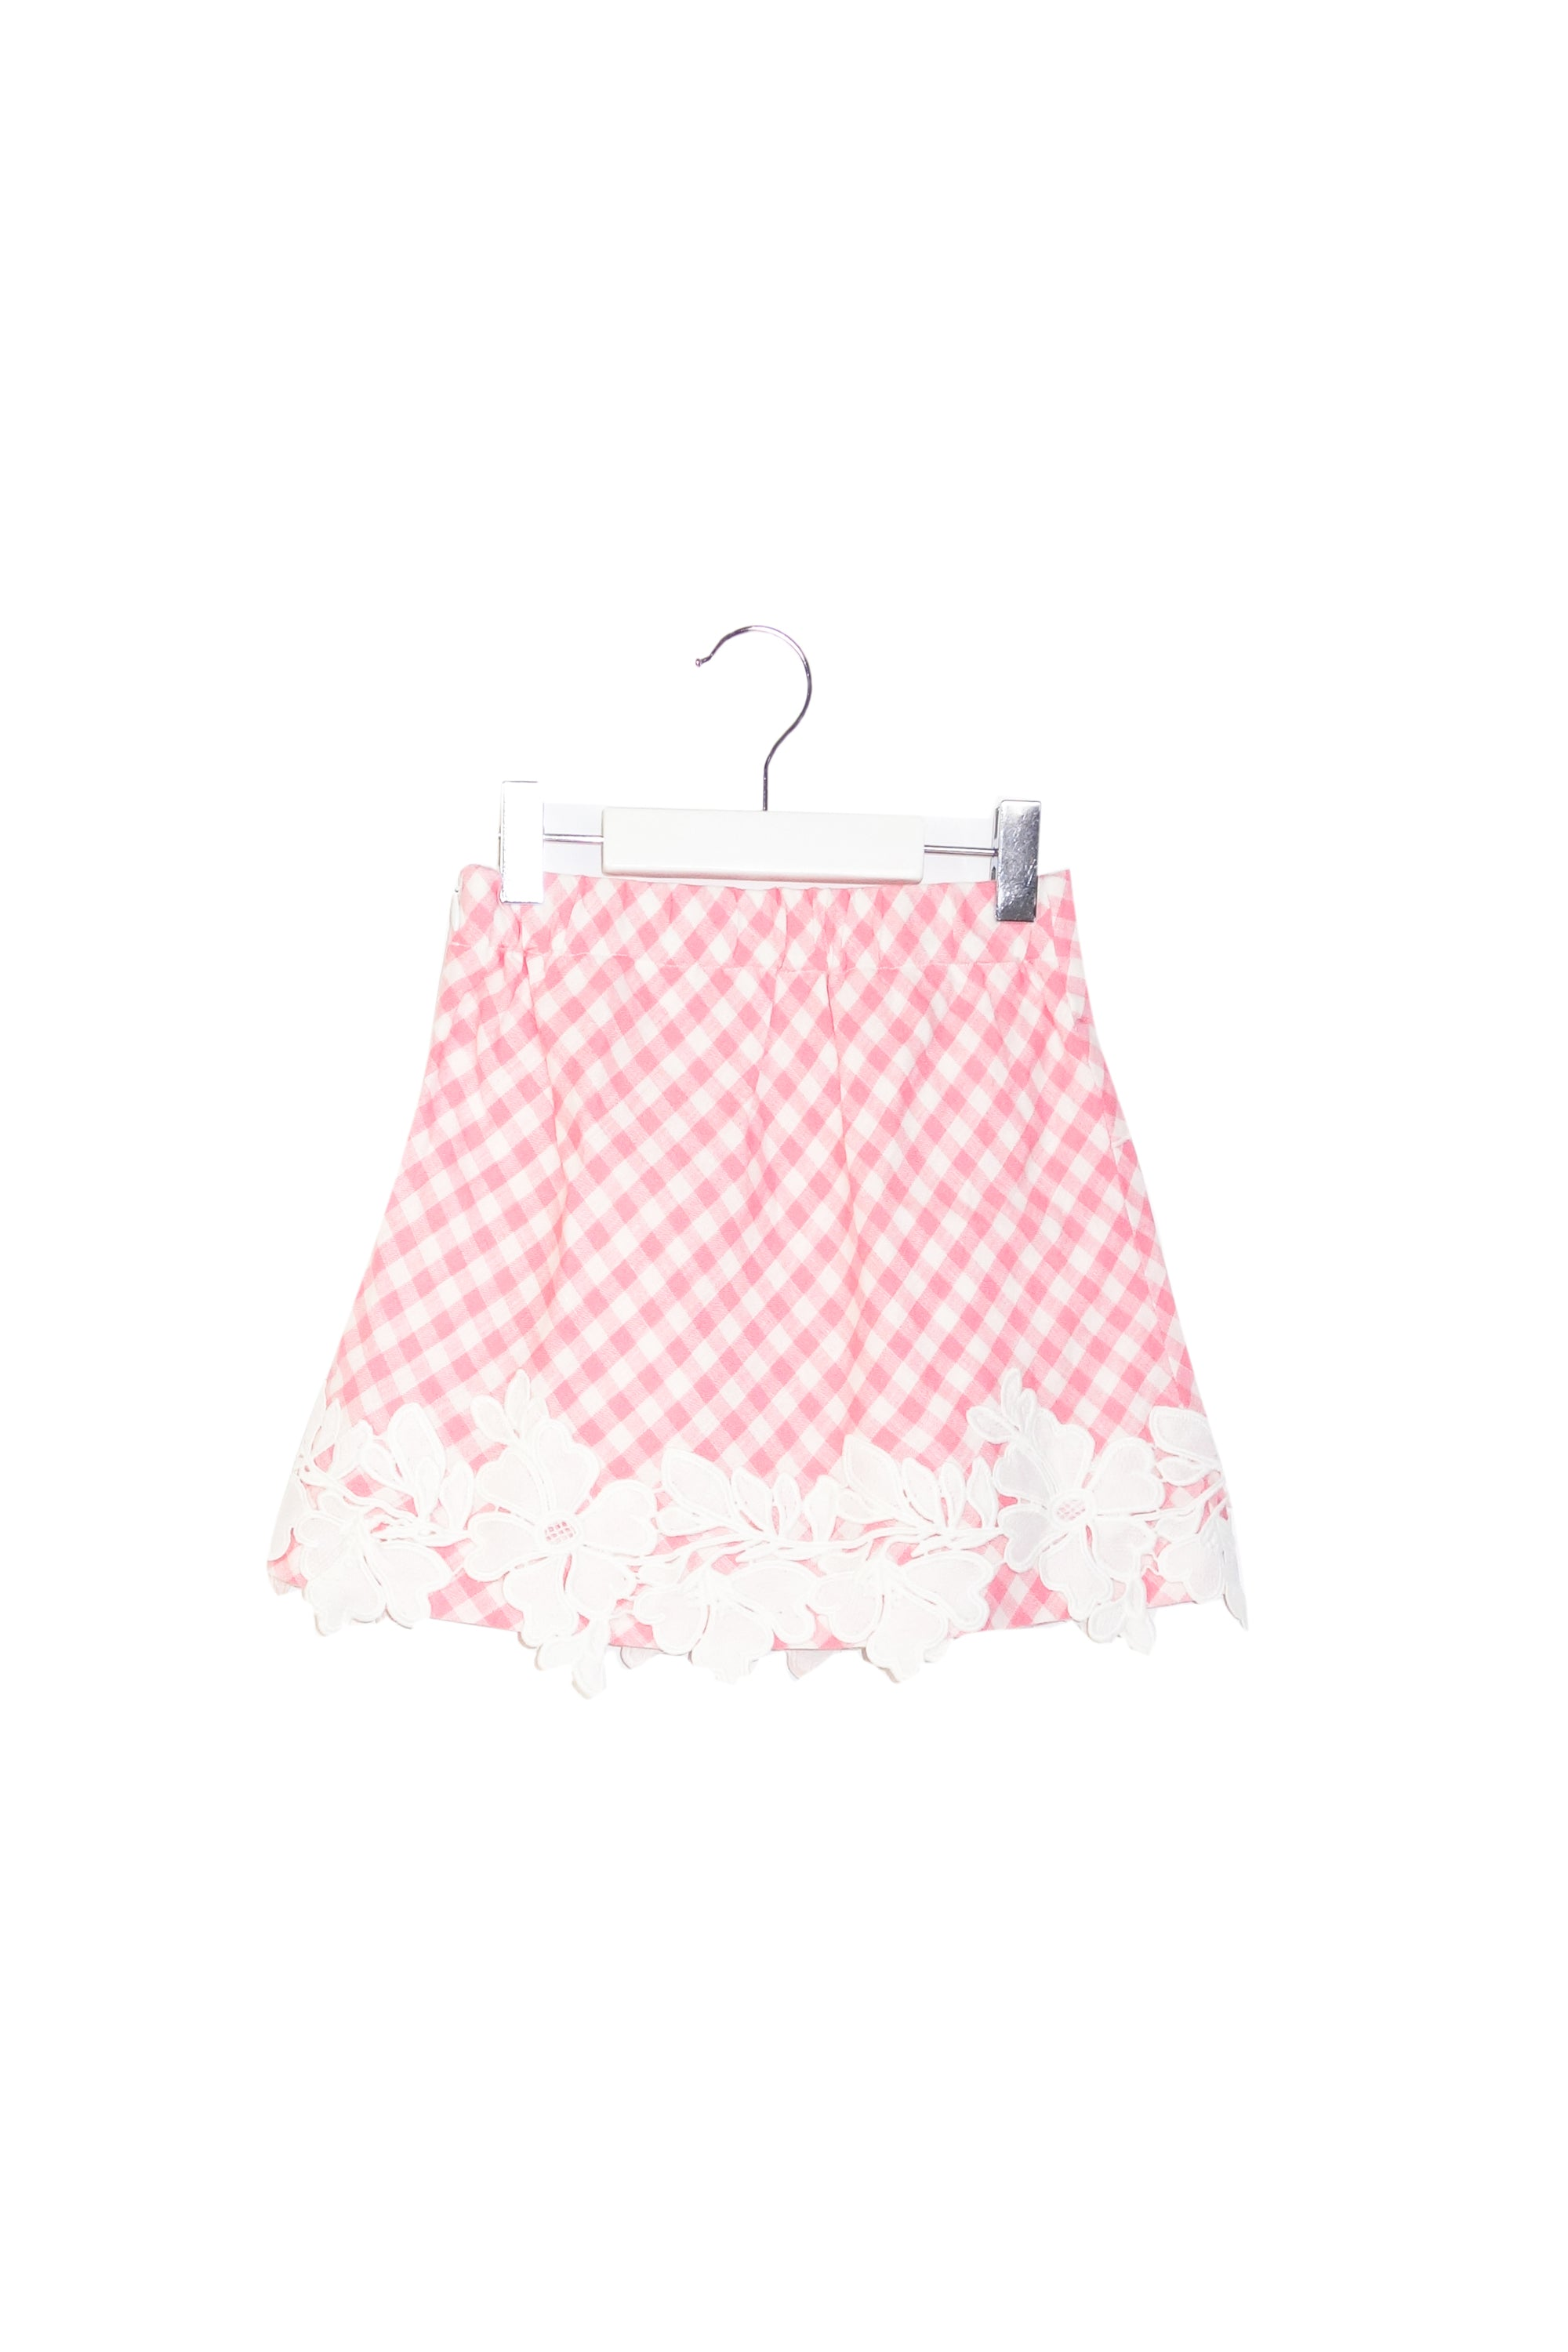 10013189 Nicholas & Bears Kids ~ Top and Skirt 6T at Retykle